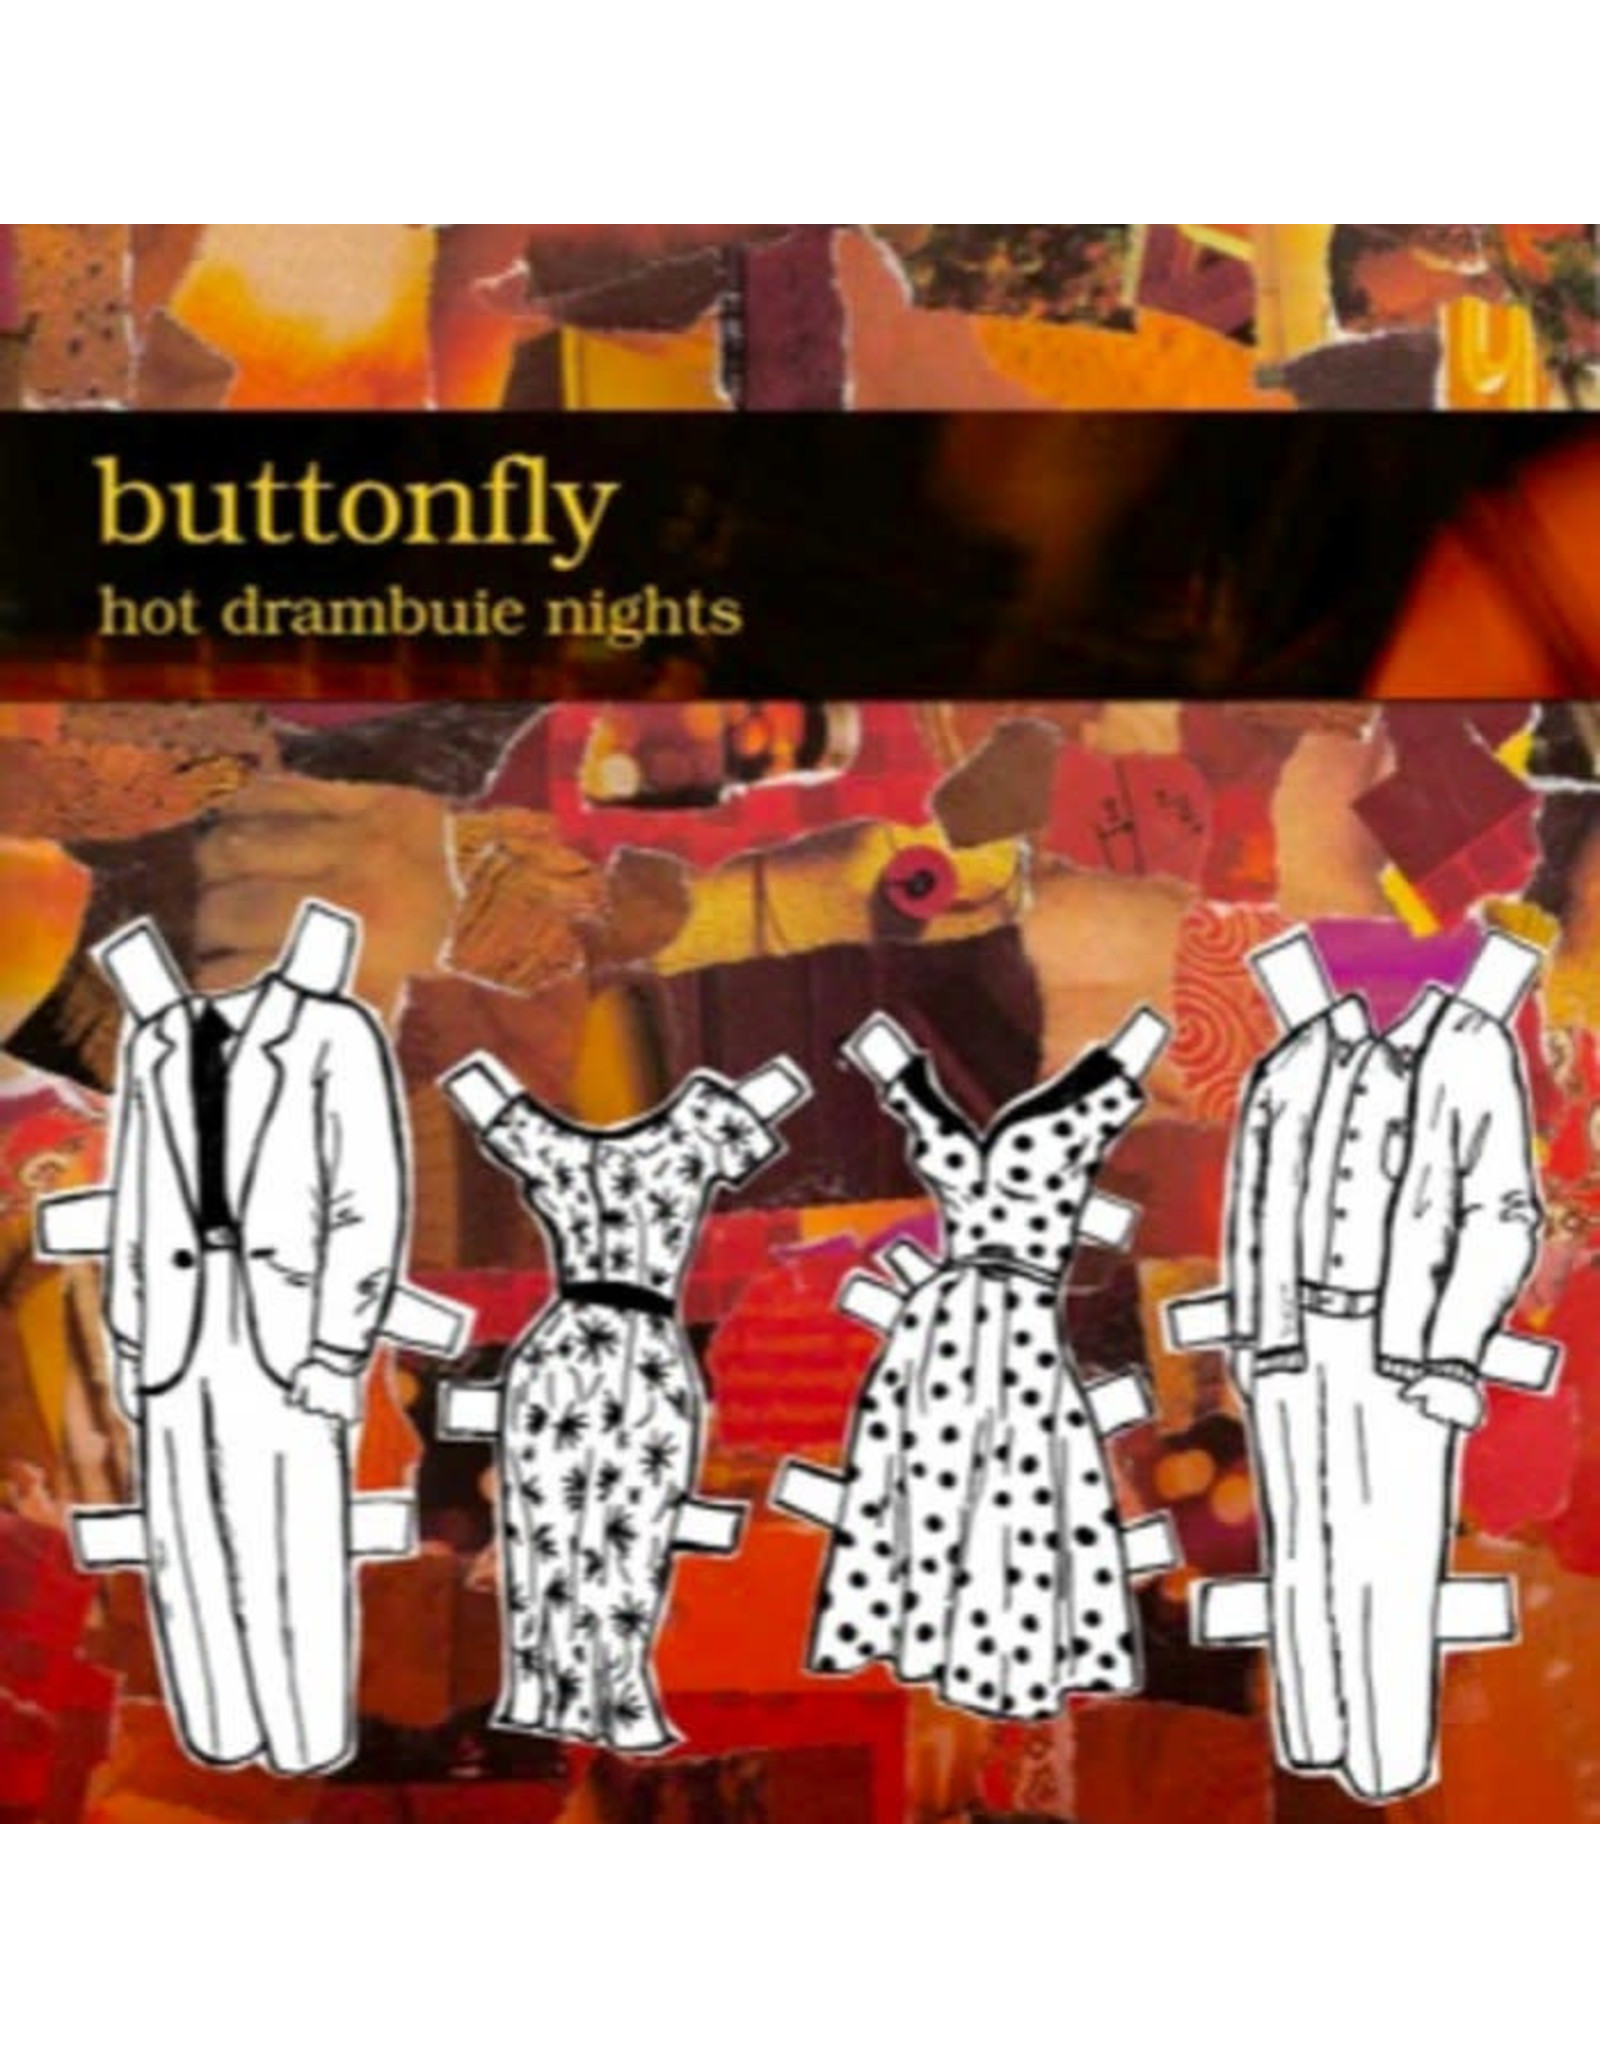 Buttonfly - Hot Drambuie Nights CD